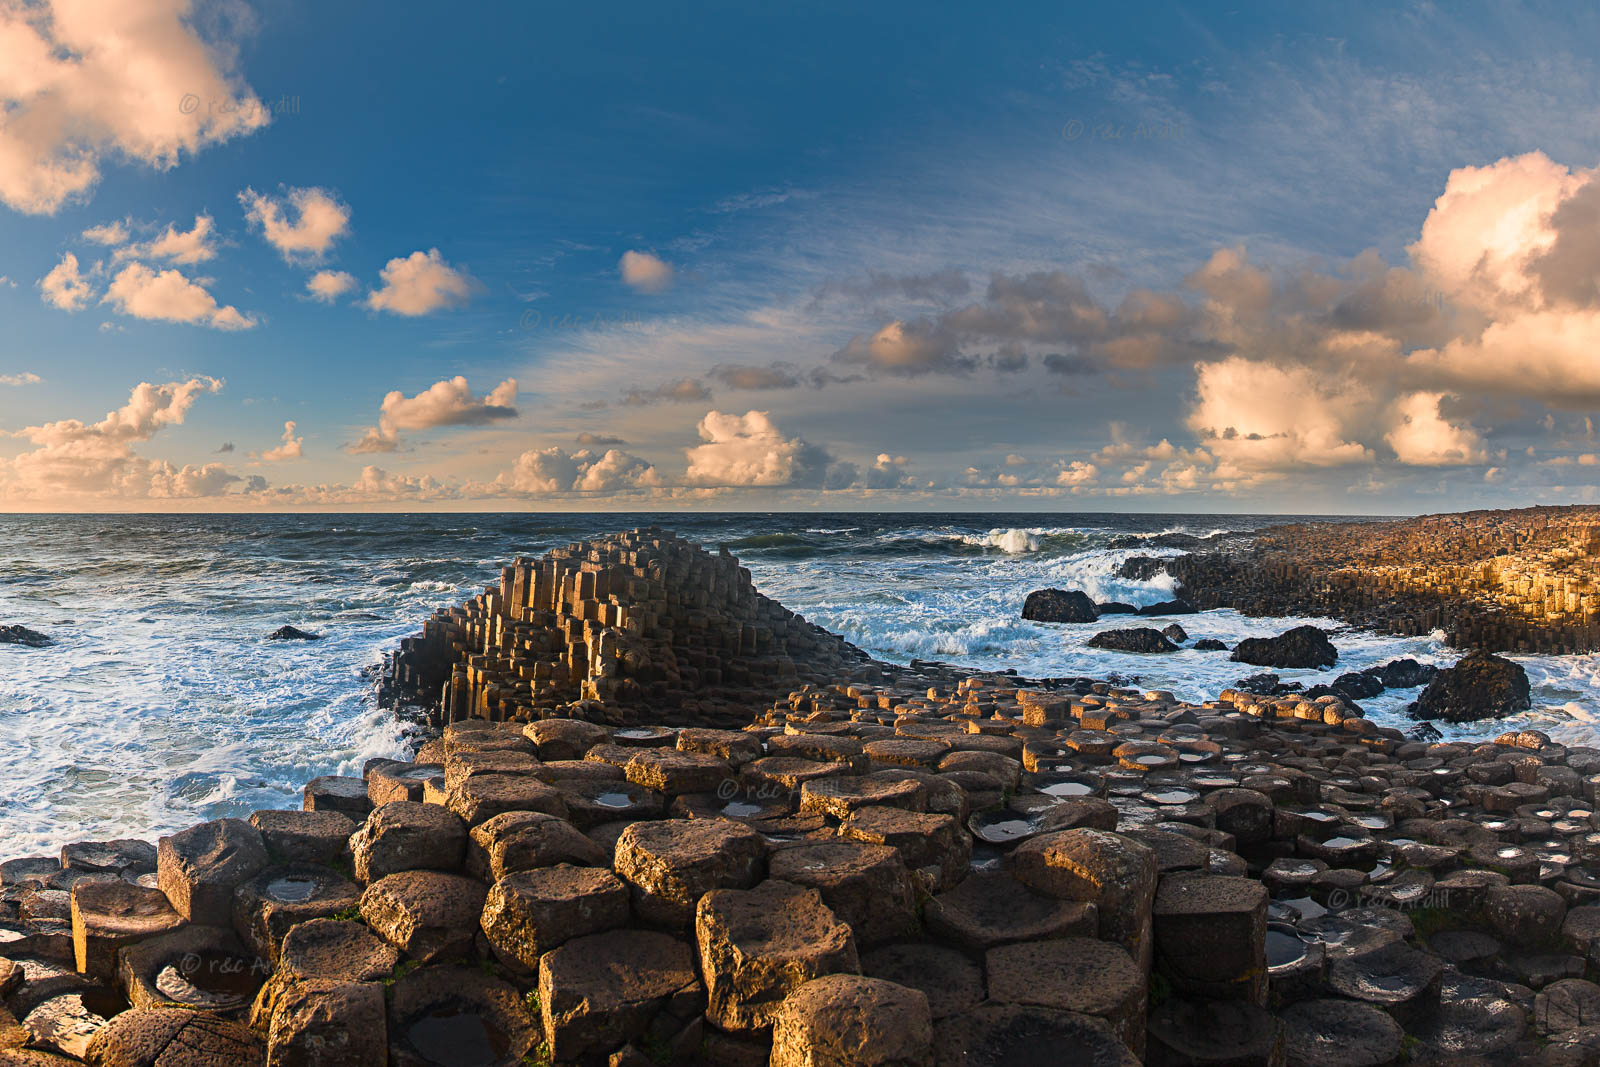 Photo of Antrim Giants Causeway Evening - T39248